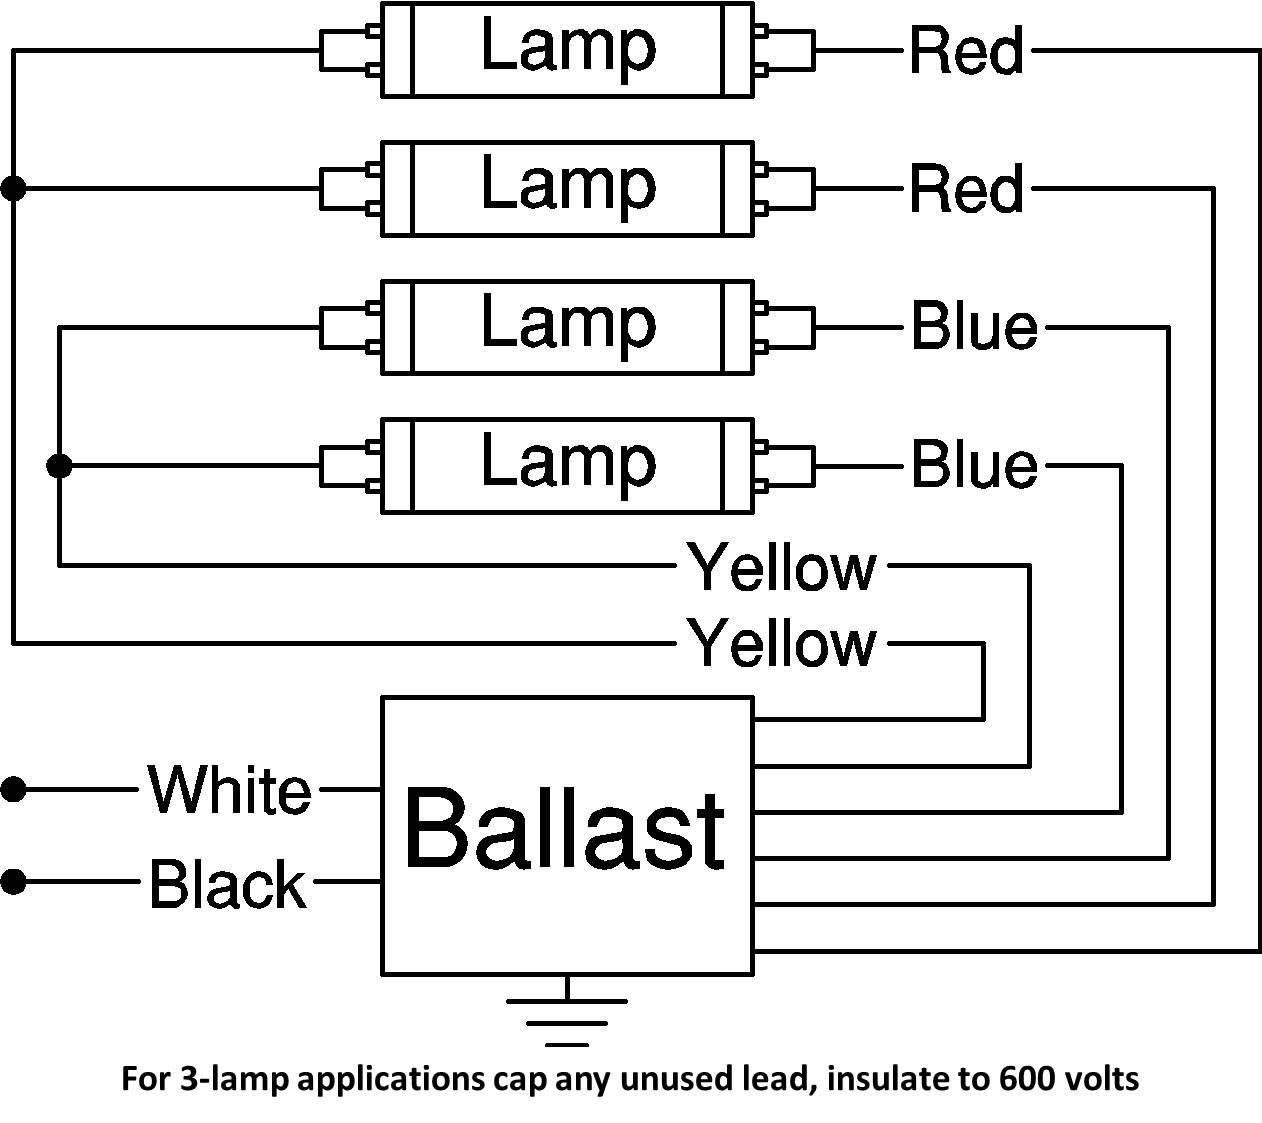 hight resolution of 3 lamp f96t12 ballast wiring diagram f96t12 cw wiring